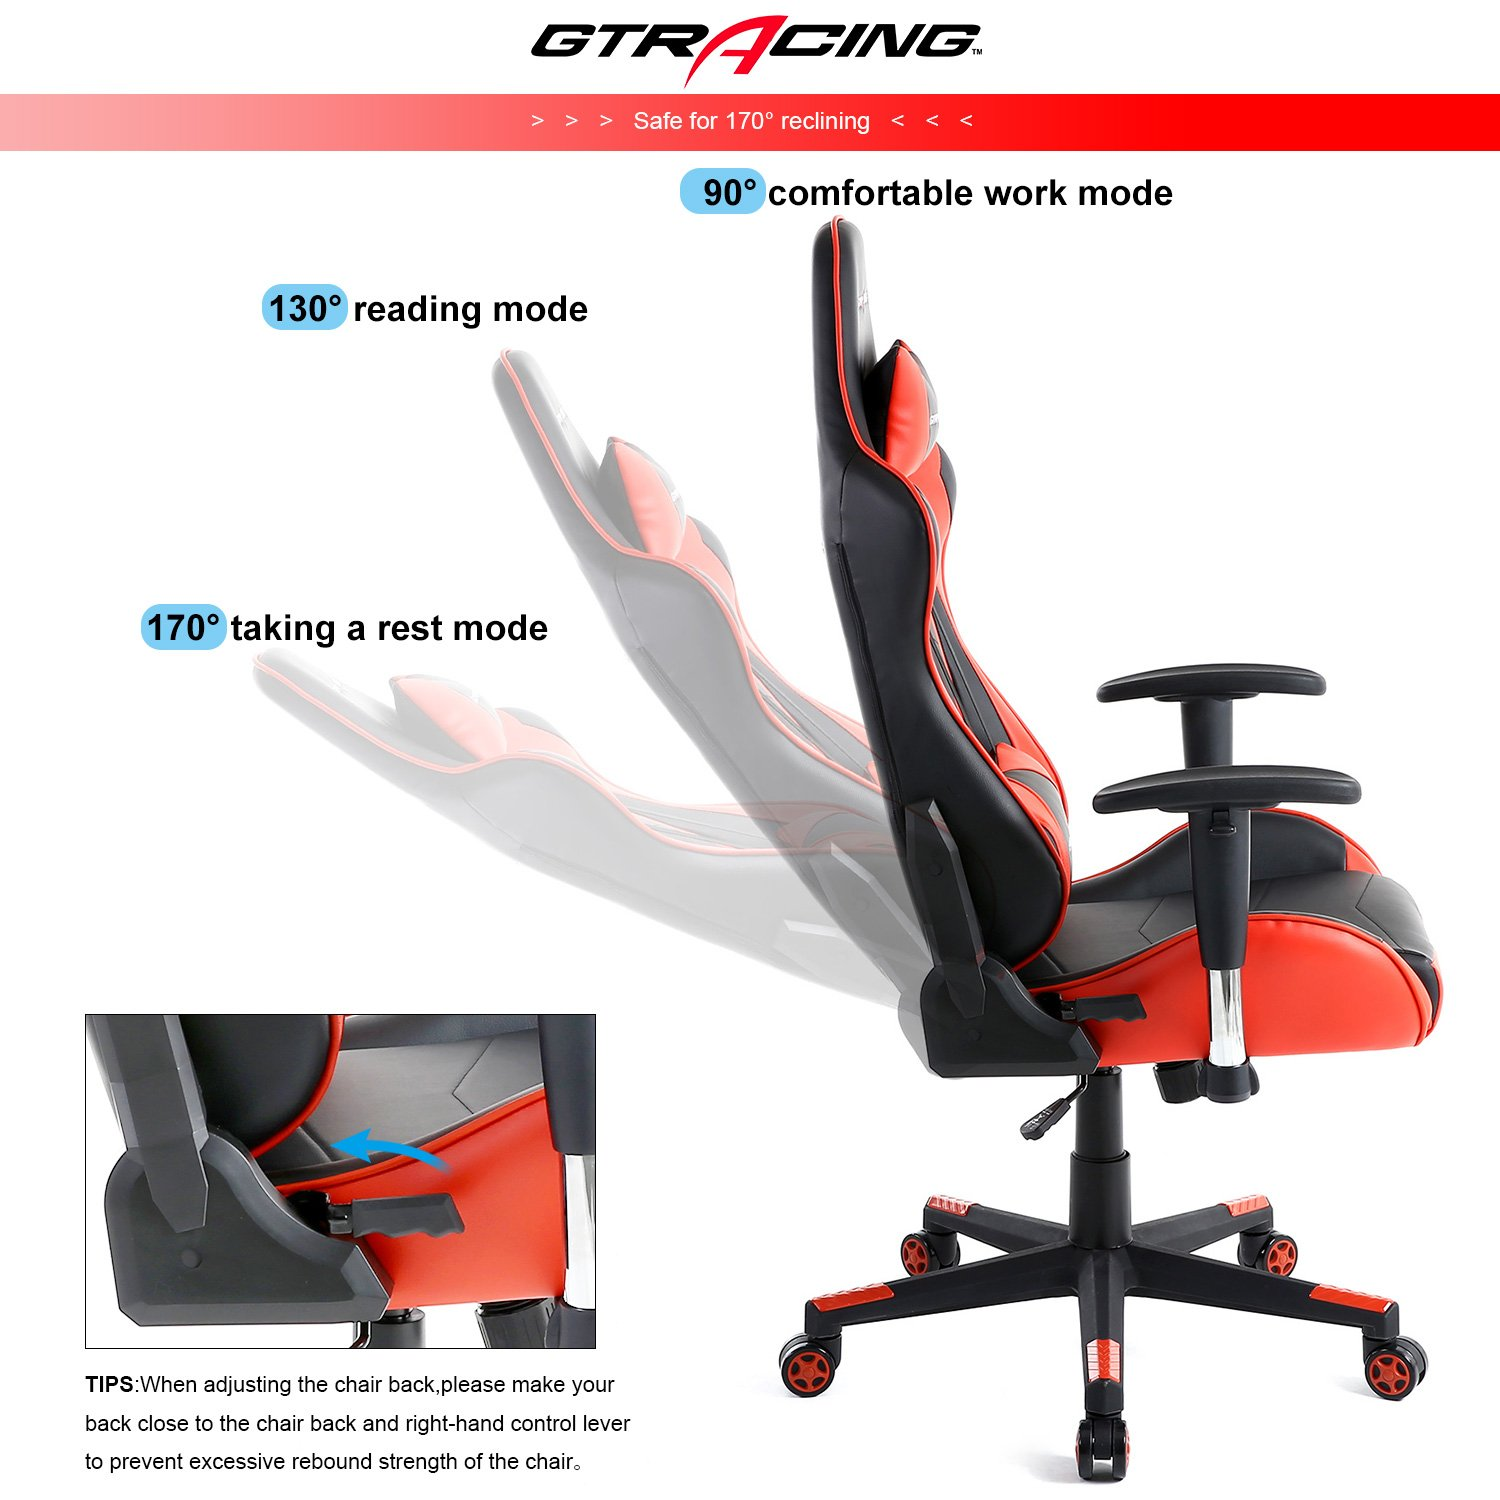 GTracing Ergonomic Office Chair Racing Chair Backrest and Seat Height Adjustment Computer Chair With Pillows Recliner Swivel Rocker Tilt E-sports Chair (Black/Red) by GTRACING (Image #5)